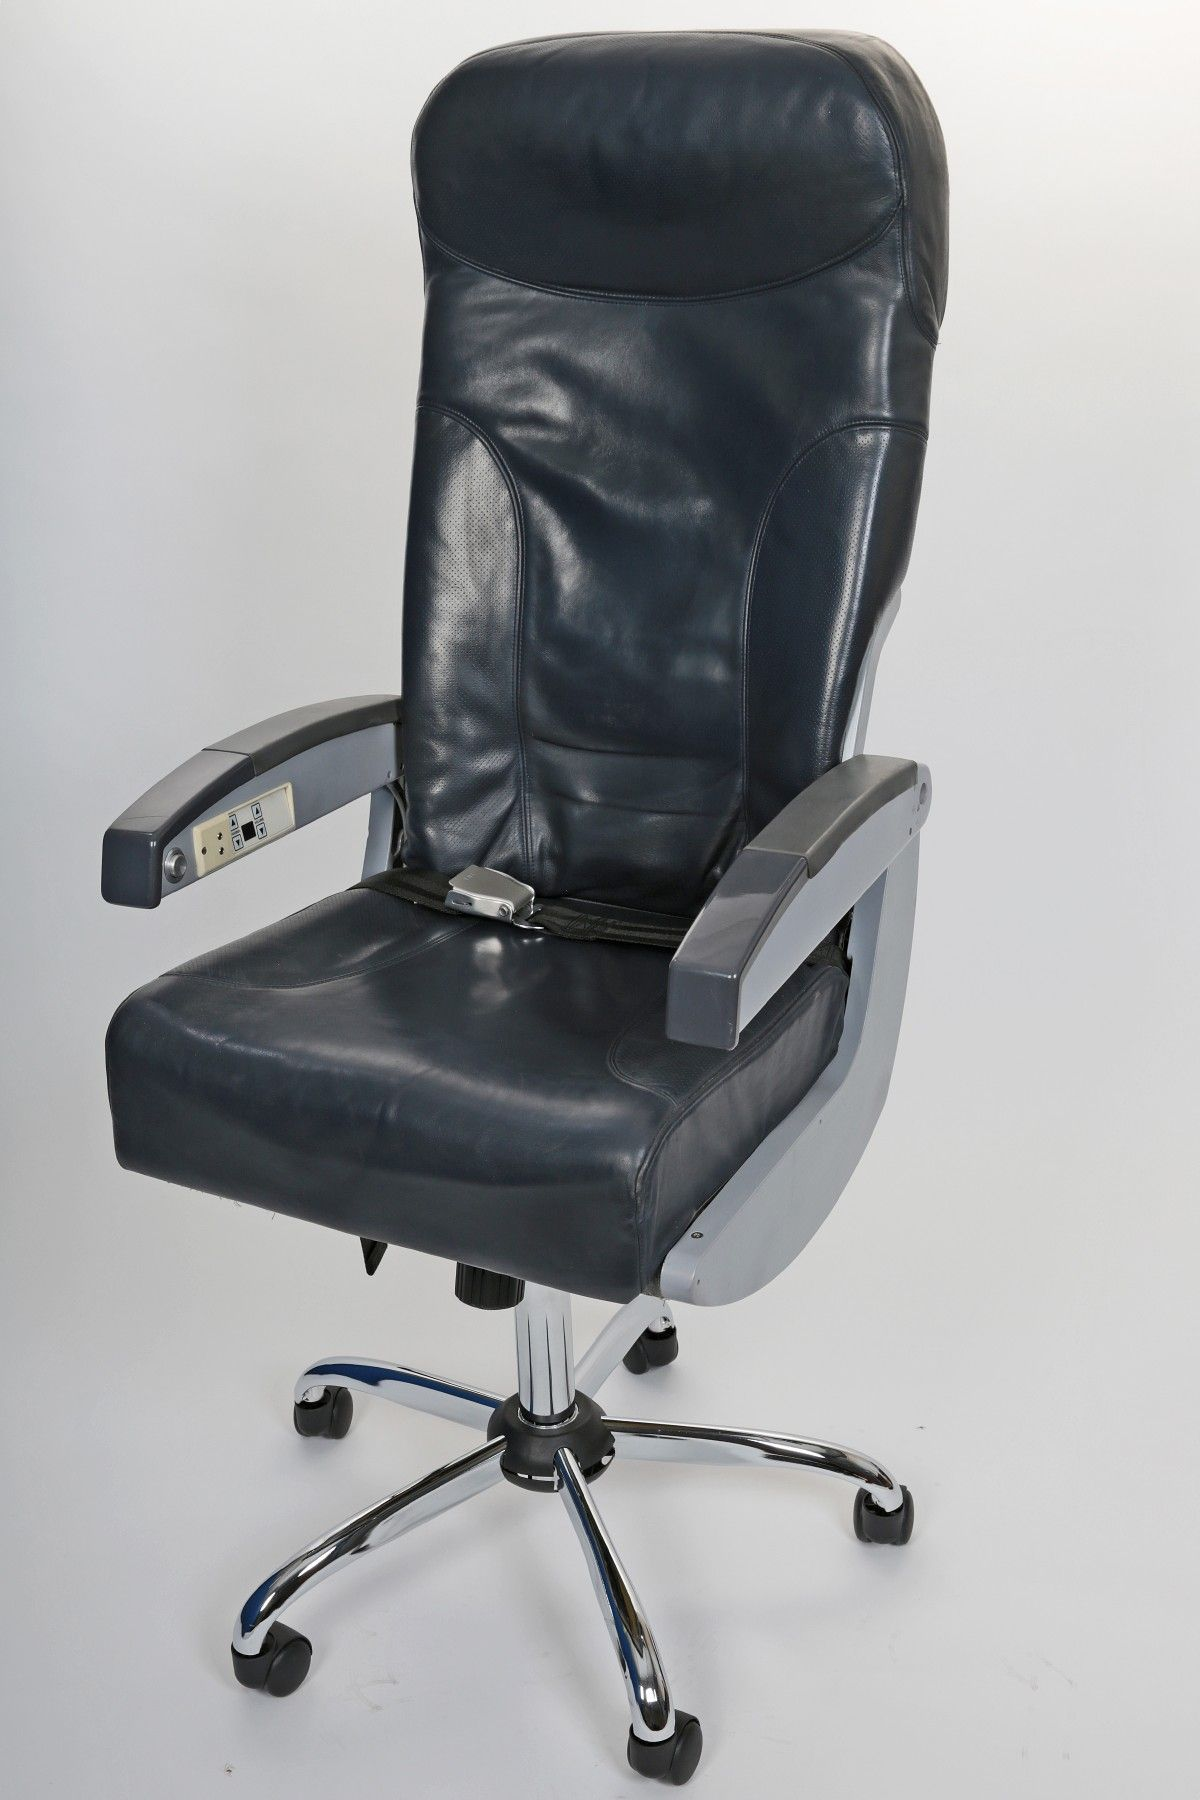 airline seat office chair  Ideas  Chair Office chair